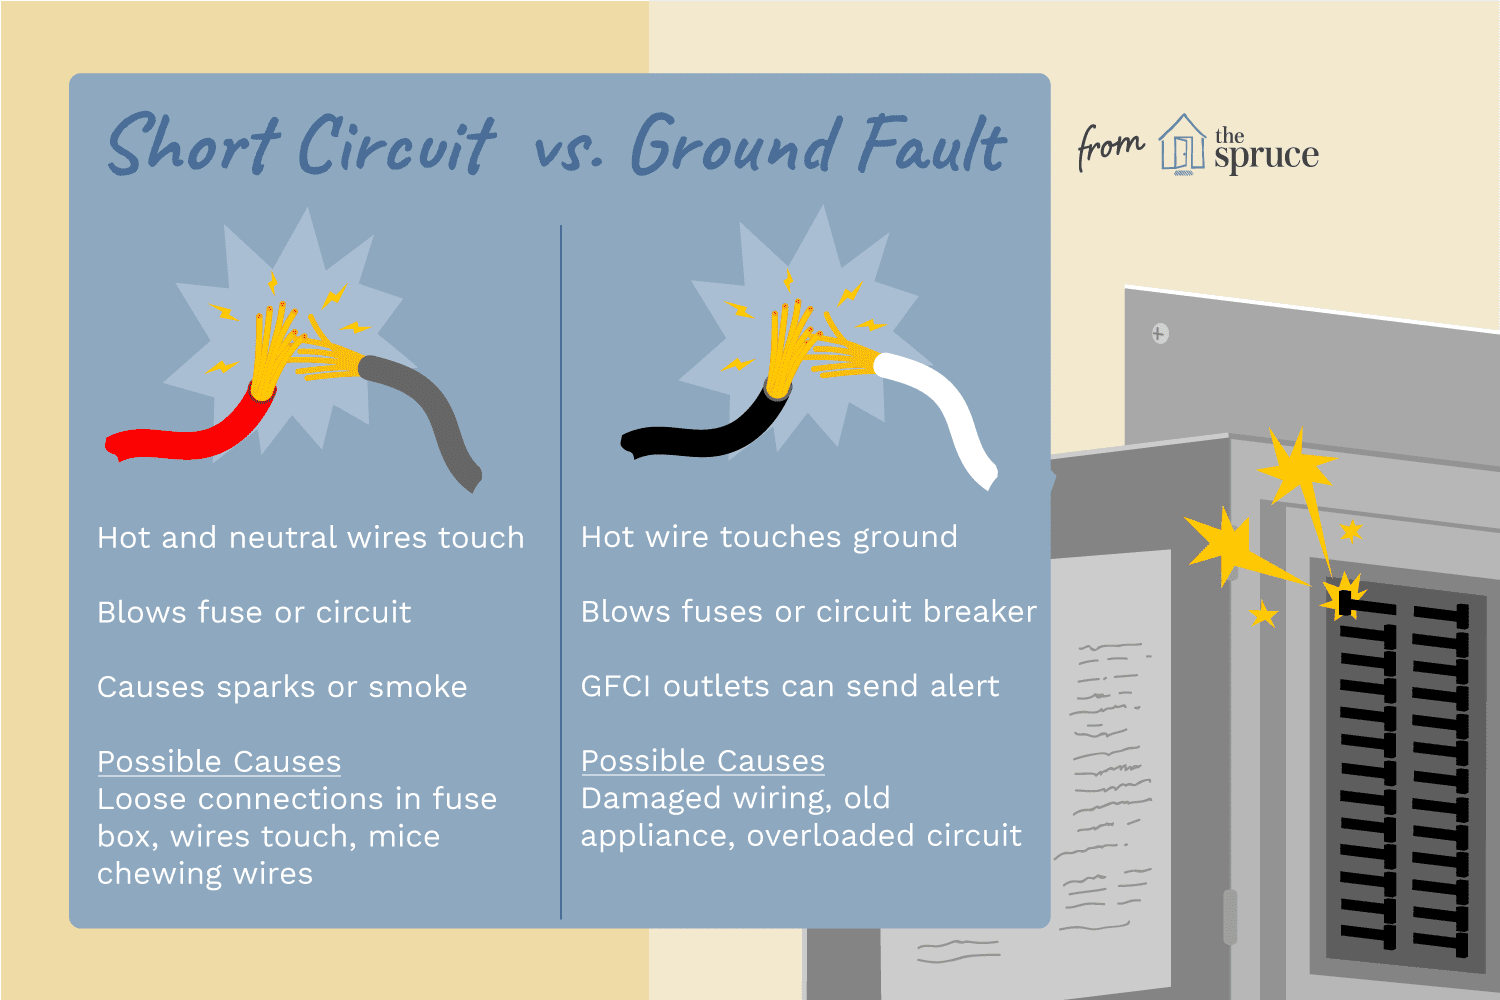 Short Circuit Vs Ground Fault Wiring A 220 Outlet Difference